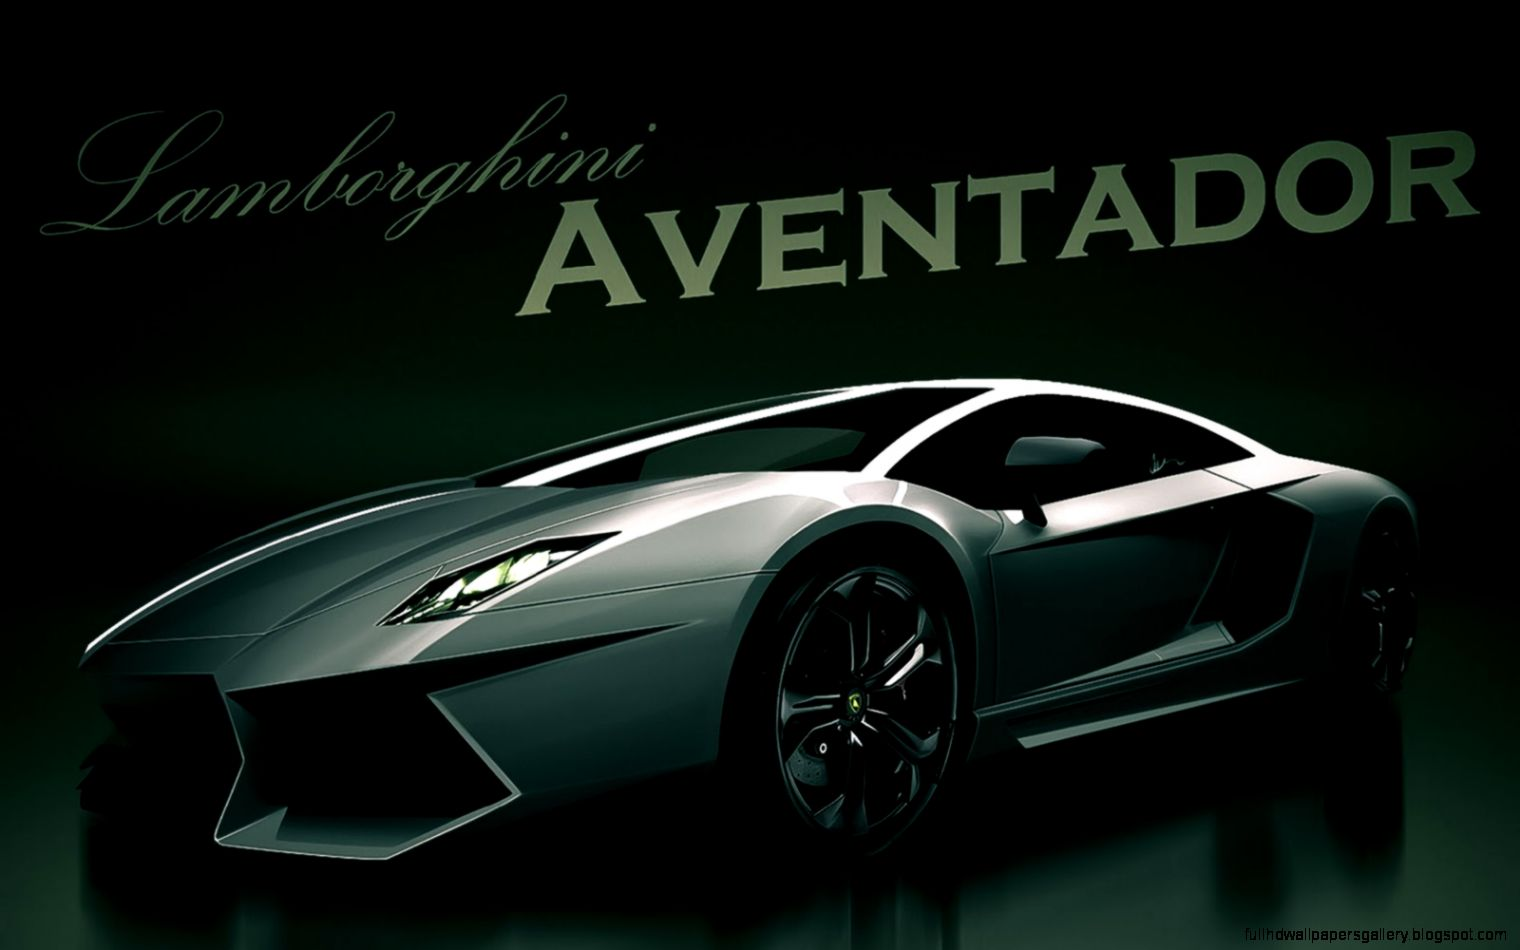 Lamborghini Aventador Wallpaper Hd Download Free